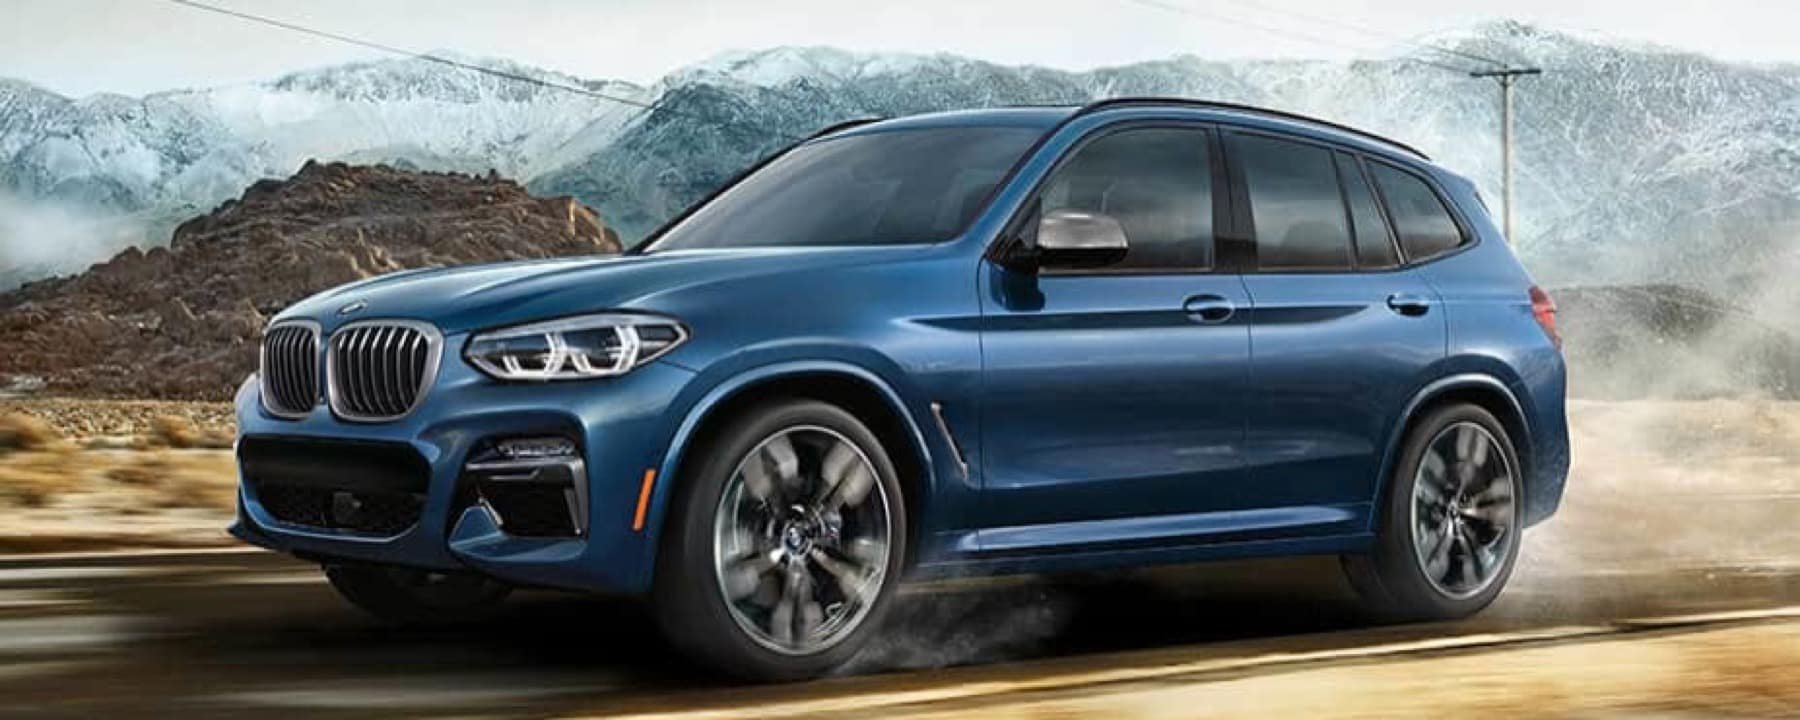 the 2019 bmw x3 the ultimate sport activity vehicle bmw. Black Bedroom Furniture Sets. Home Design Ideas